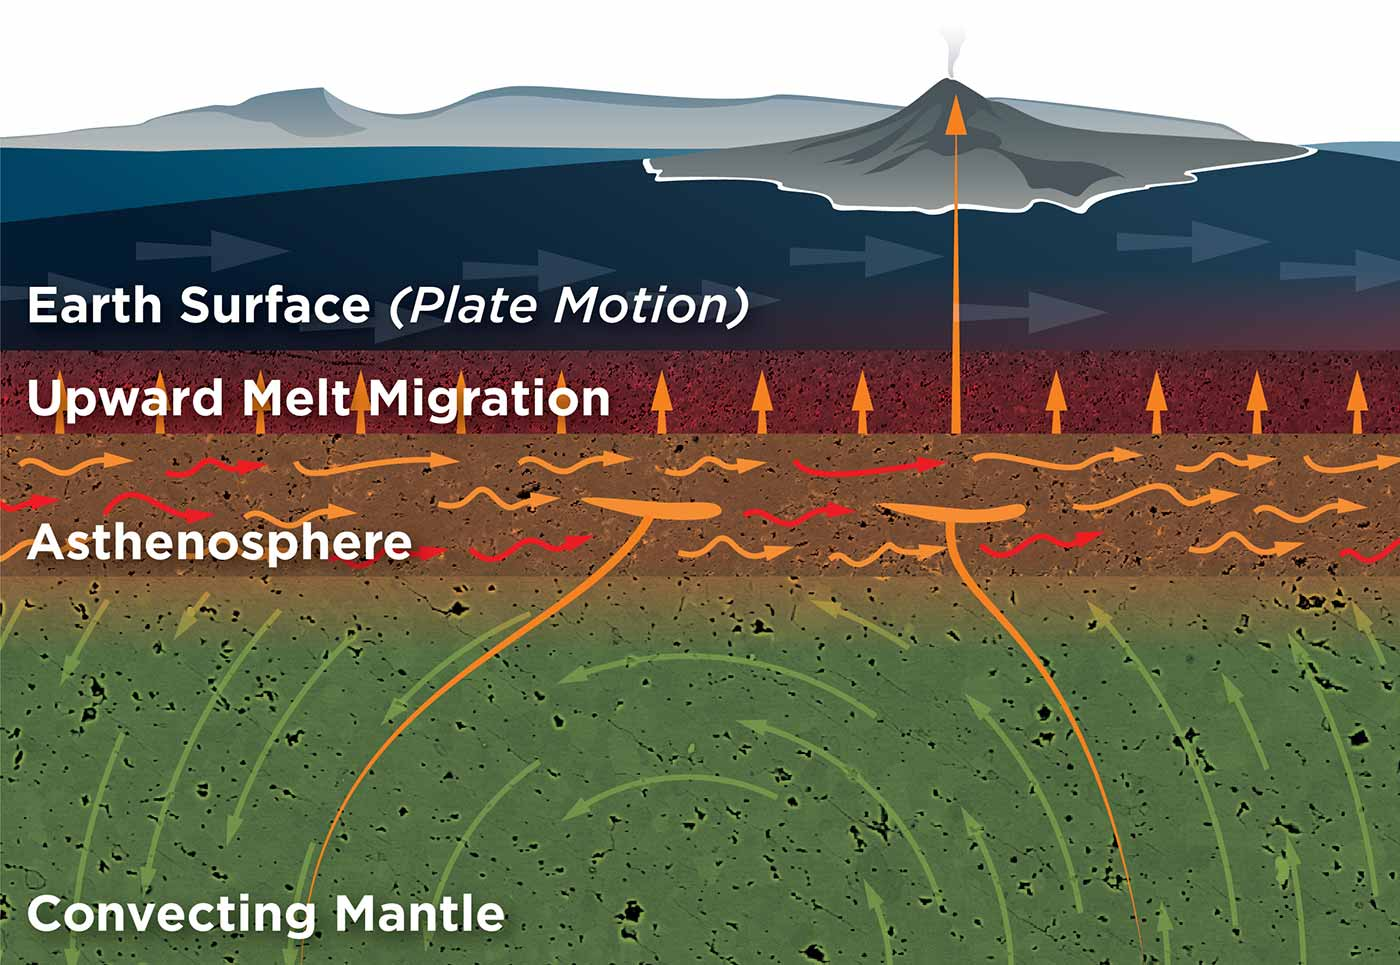 Image: A graphical depiction of the upward motion of melt through the earth's interior layers